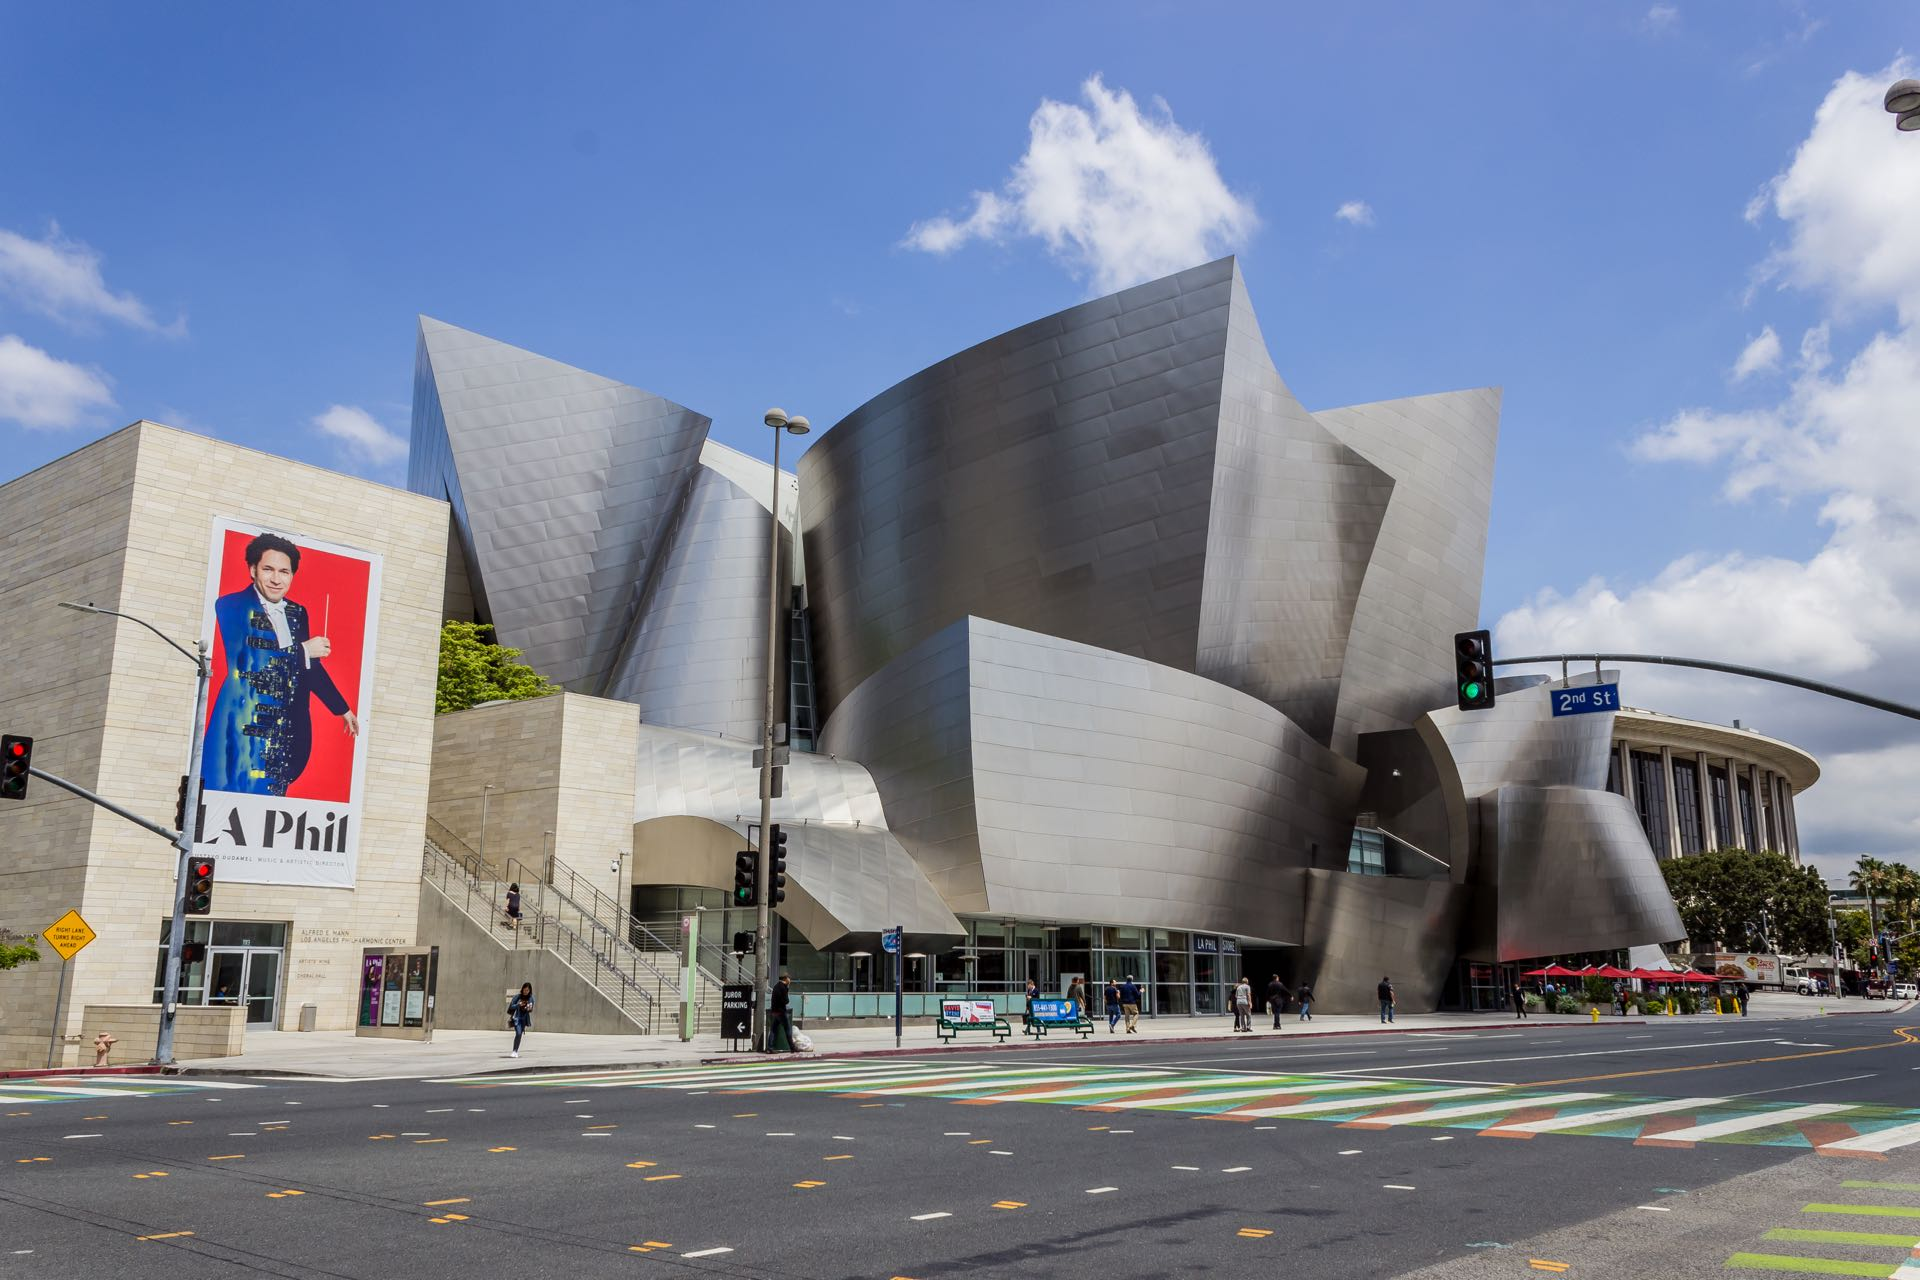 An Architectural View Of The Walt Disney Concert Hall By Frank Gehry